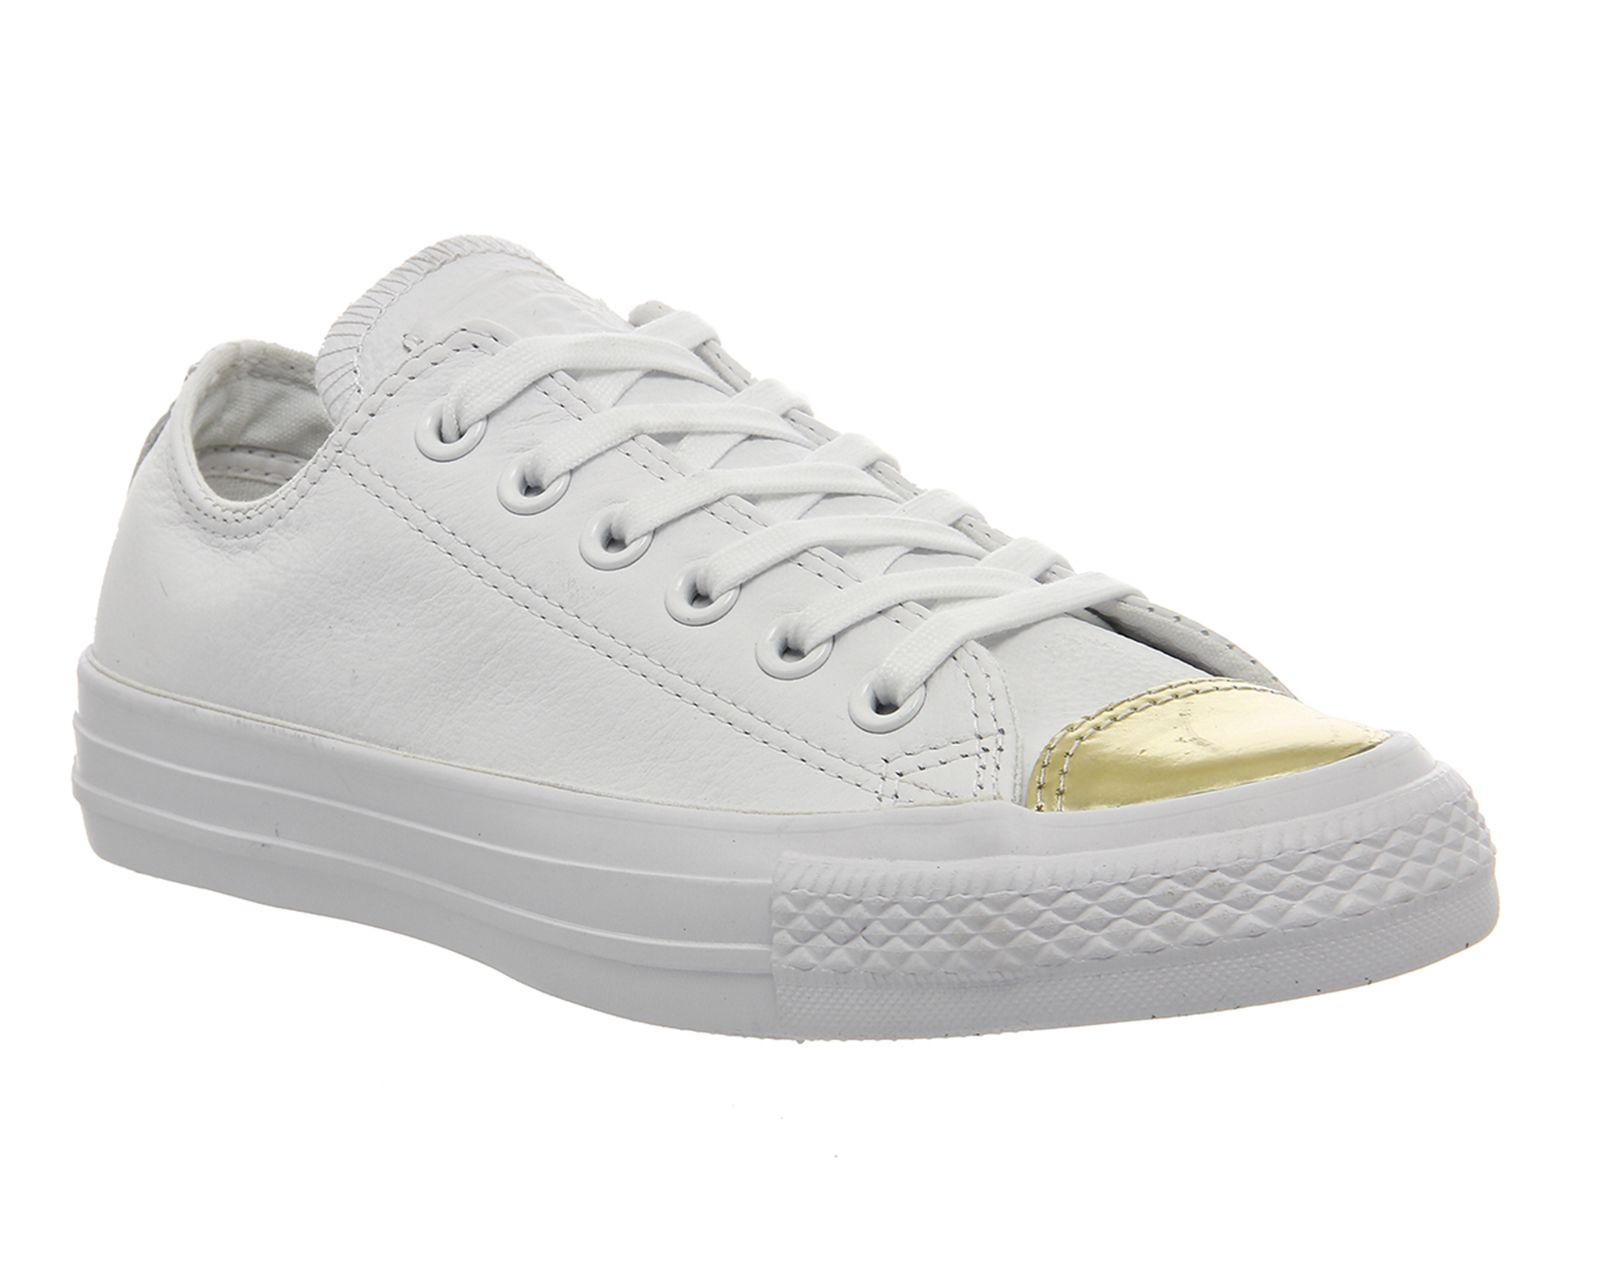 White Mono Chrome Gold Toe Converse All Star Low Leather